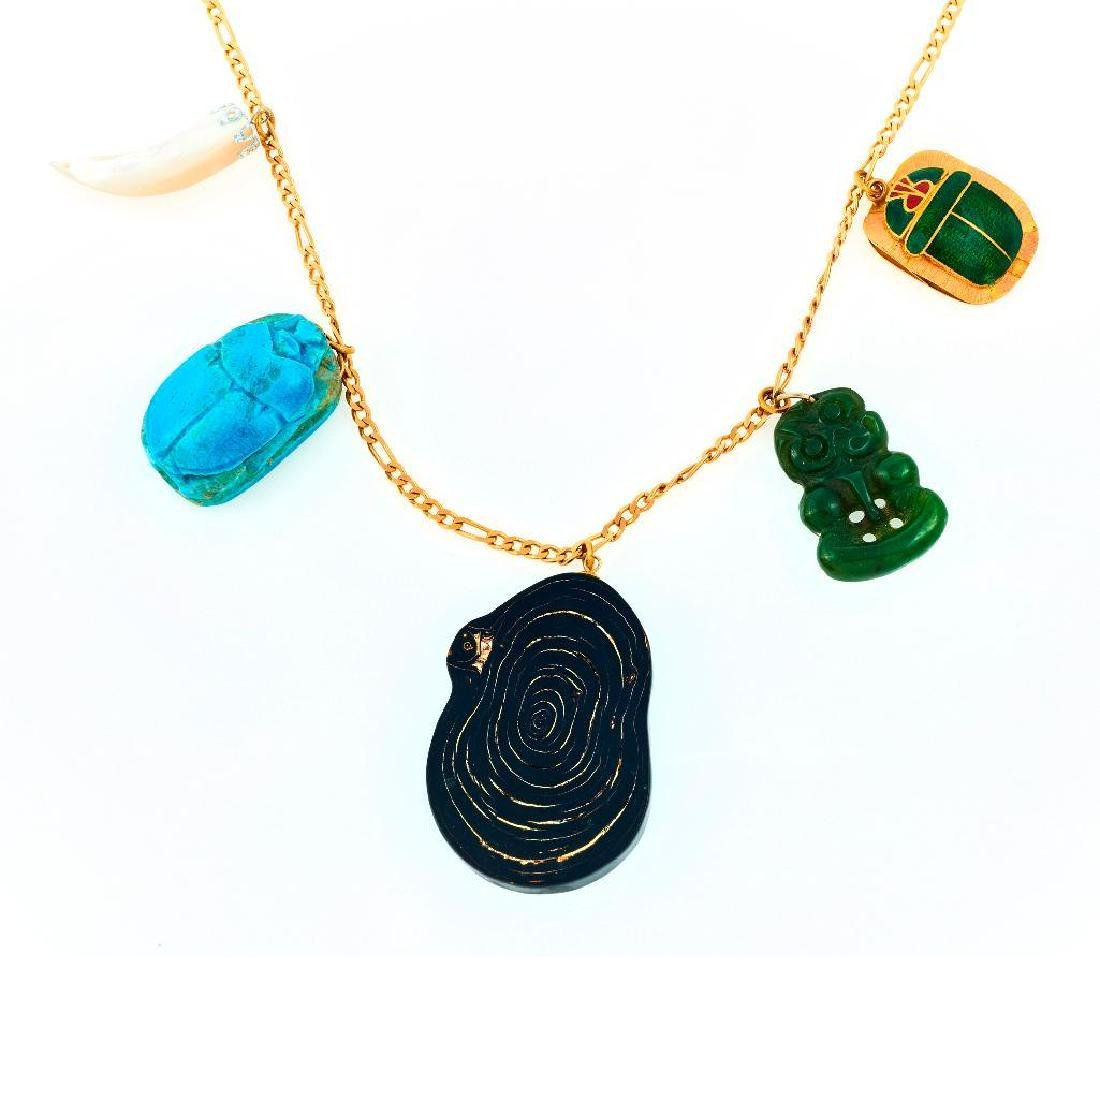 18k Gold and assorted stone charm necklace